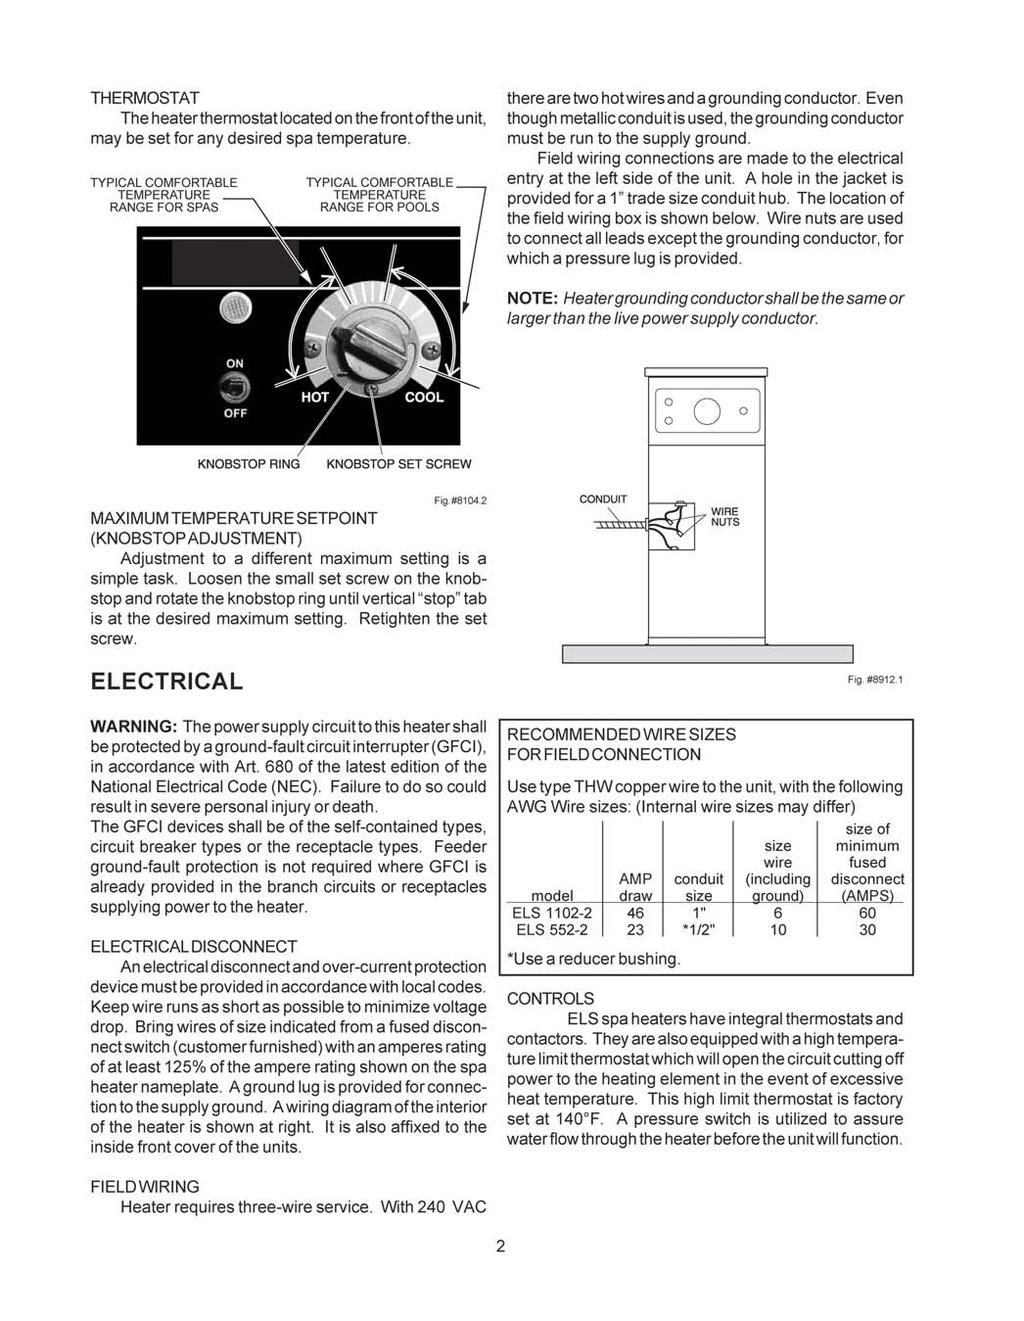 Electric Heater Technical Bulletin No Pdf White Rodgers Thermostat Wiring 1f82 51 Page 8 Of